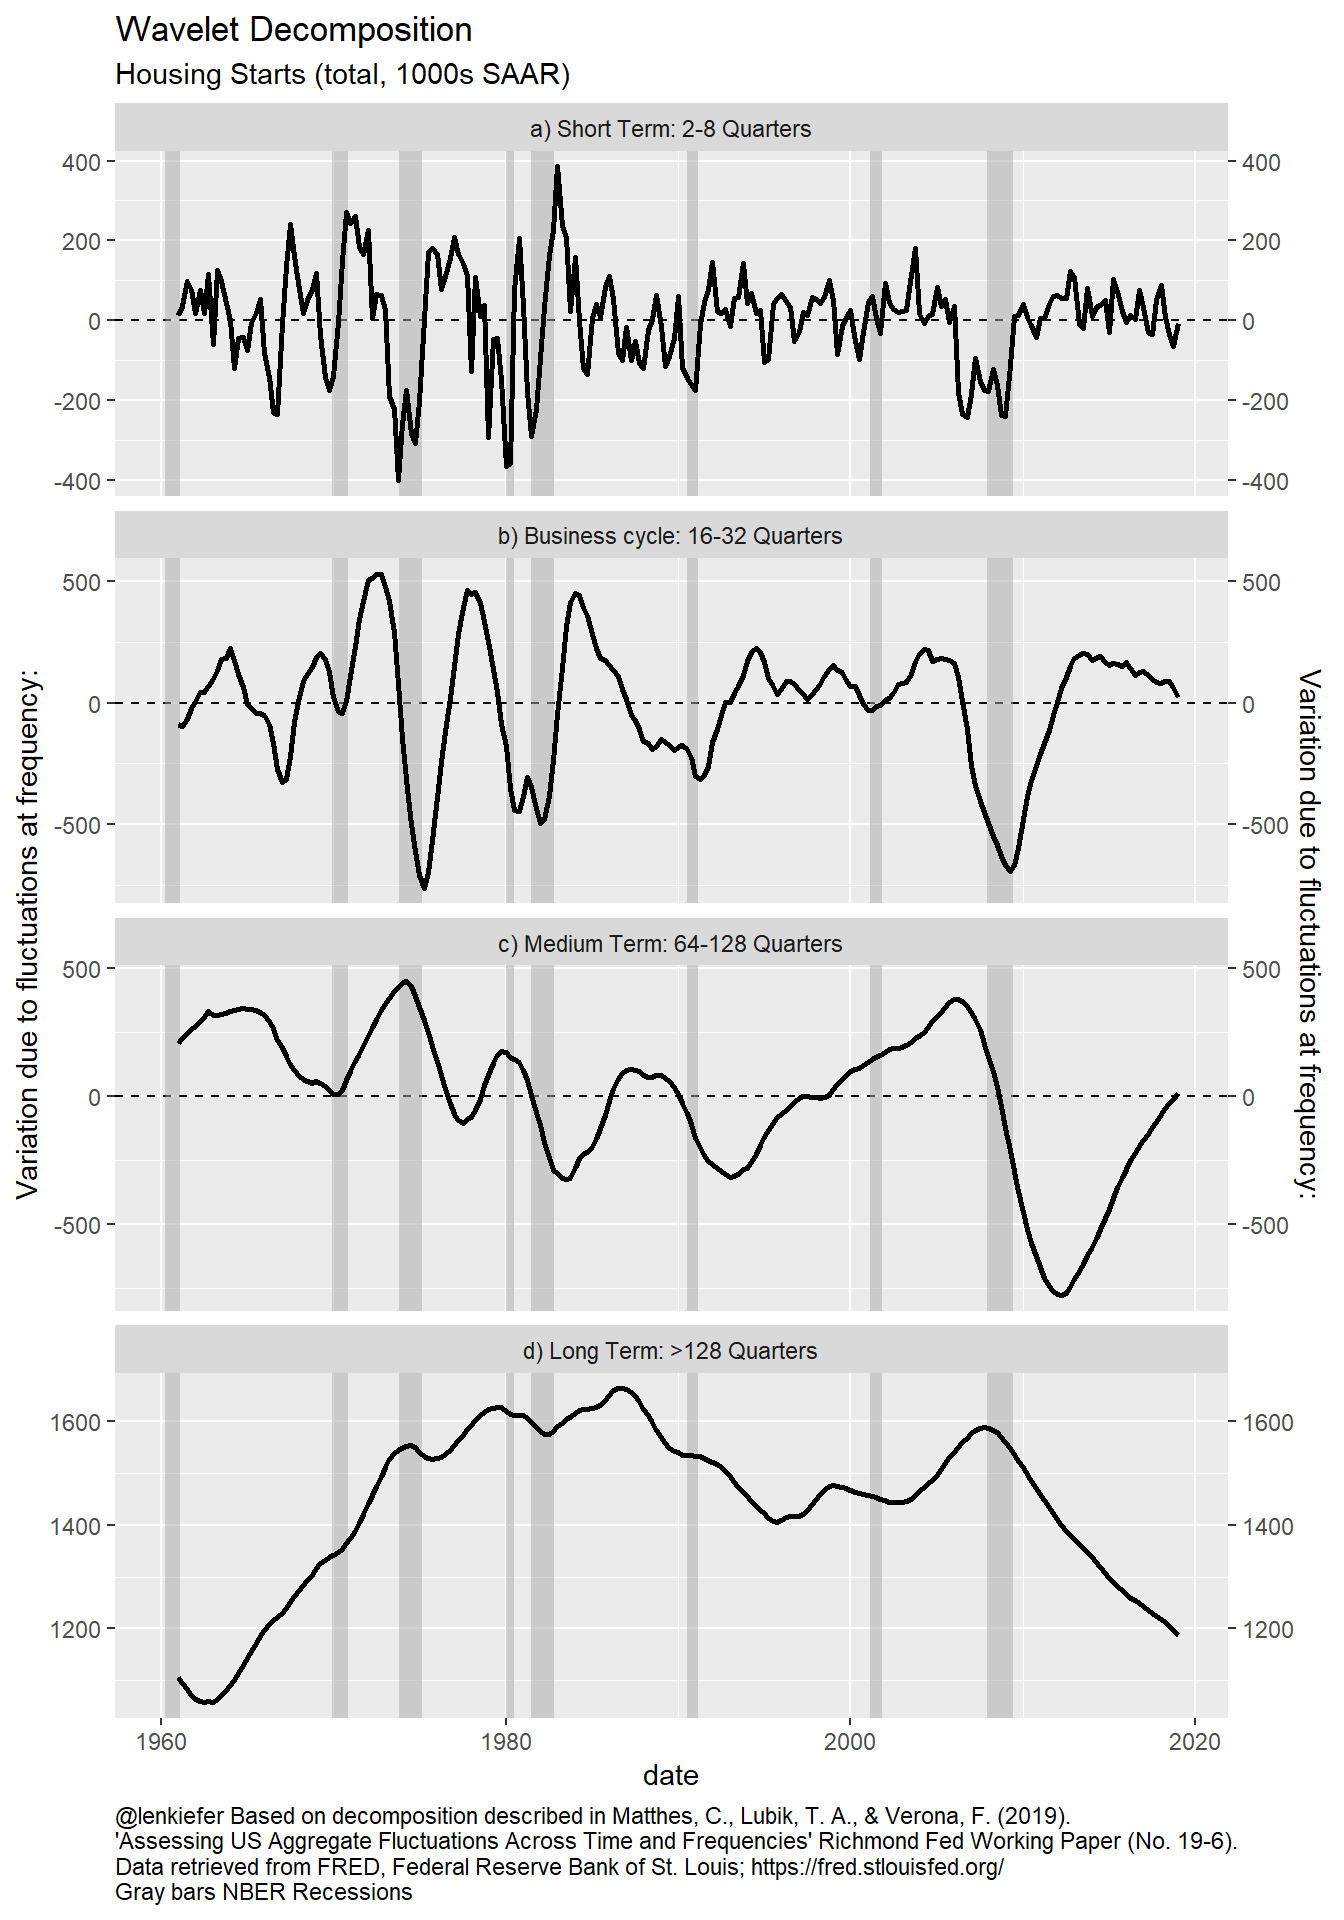 Variance decomposition of housing starts